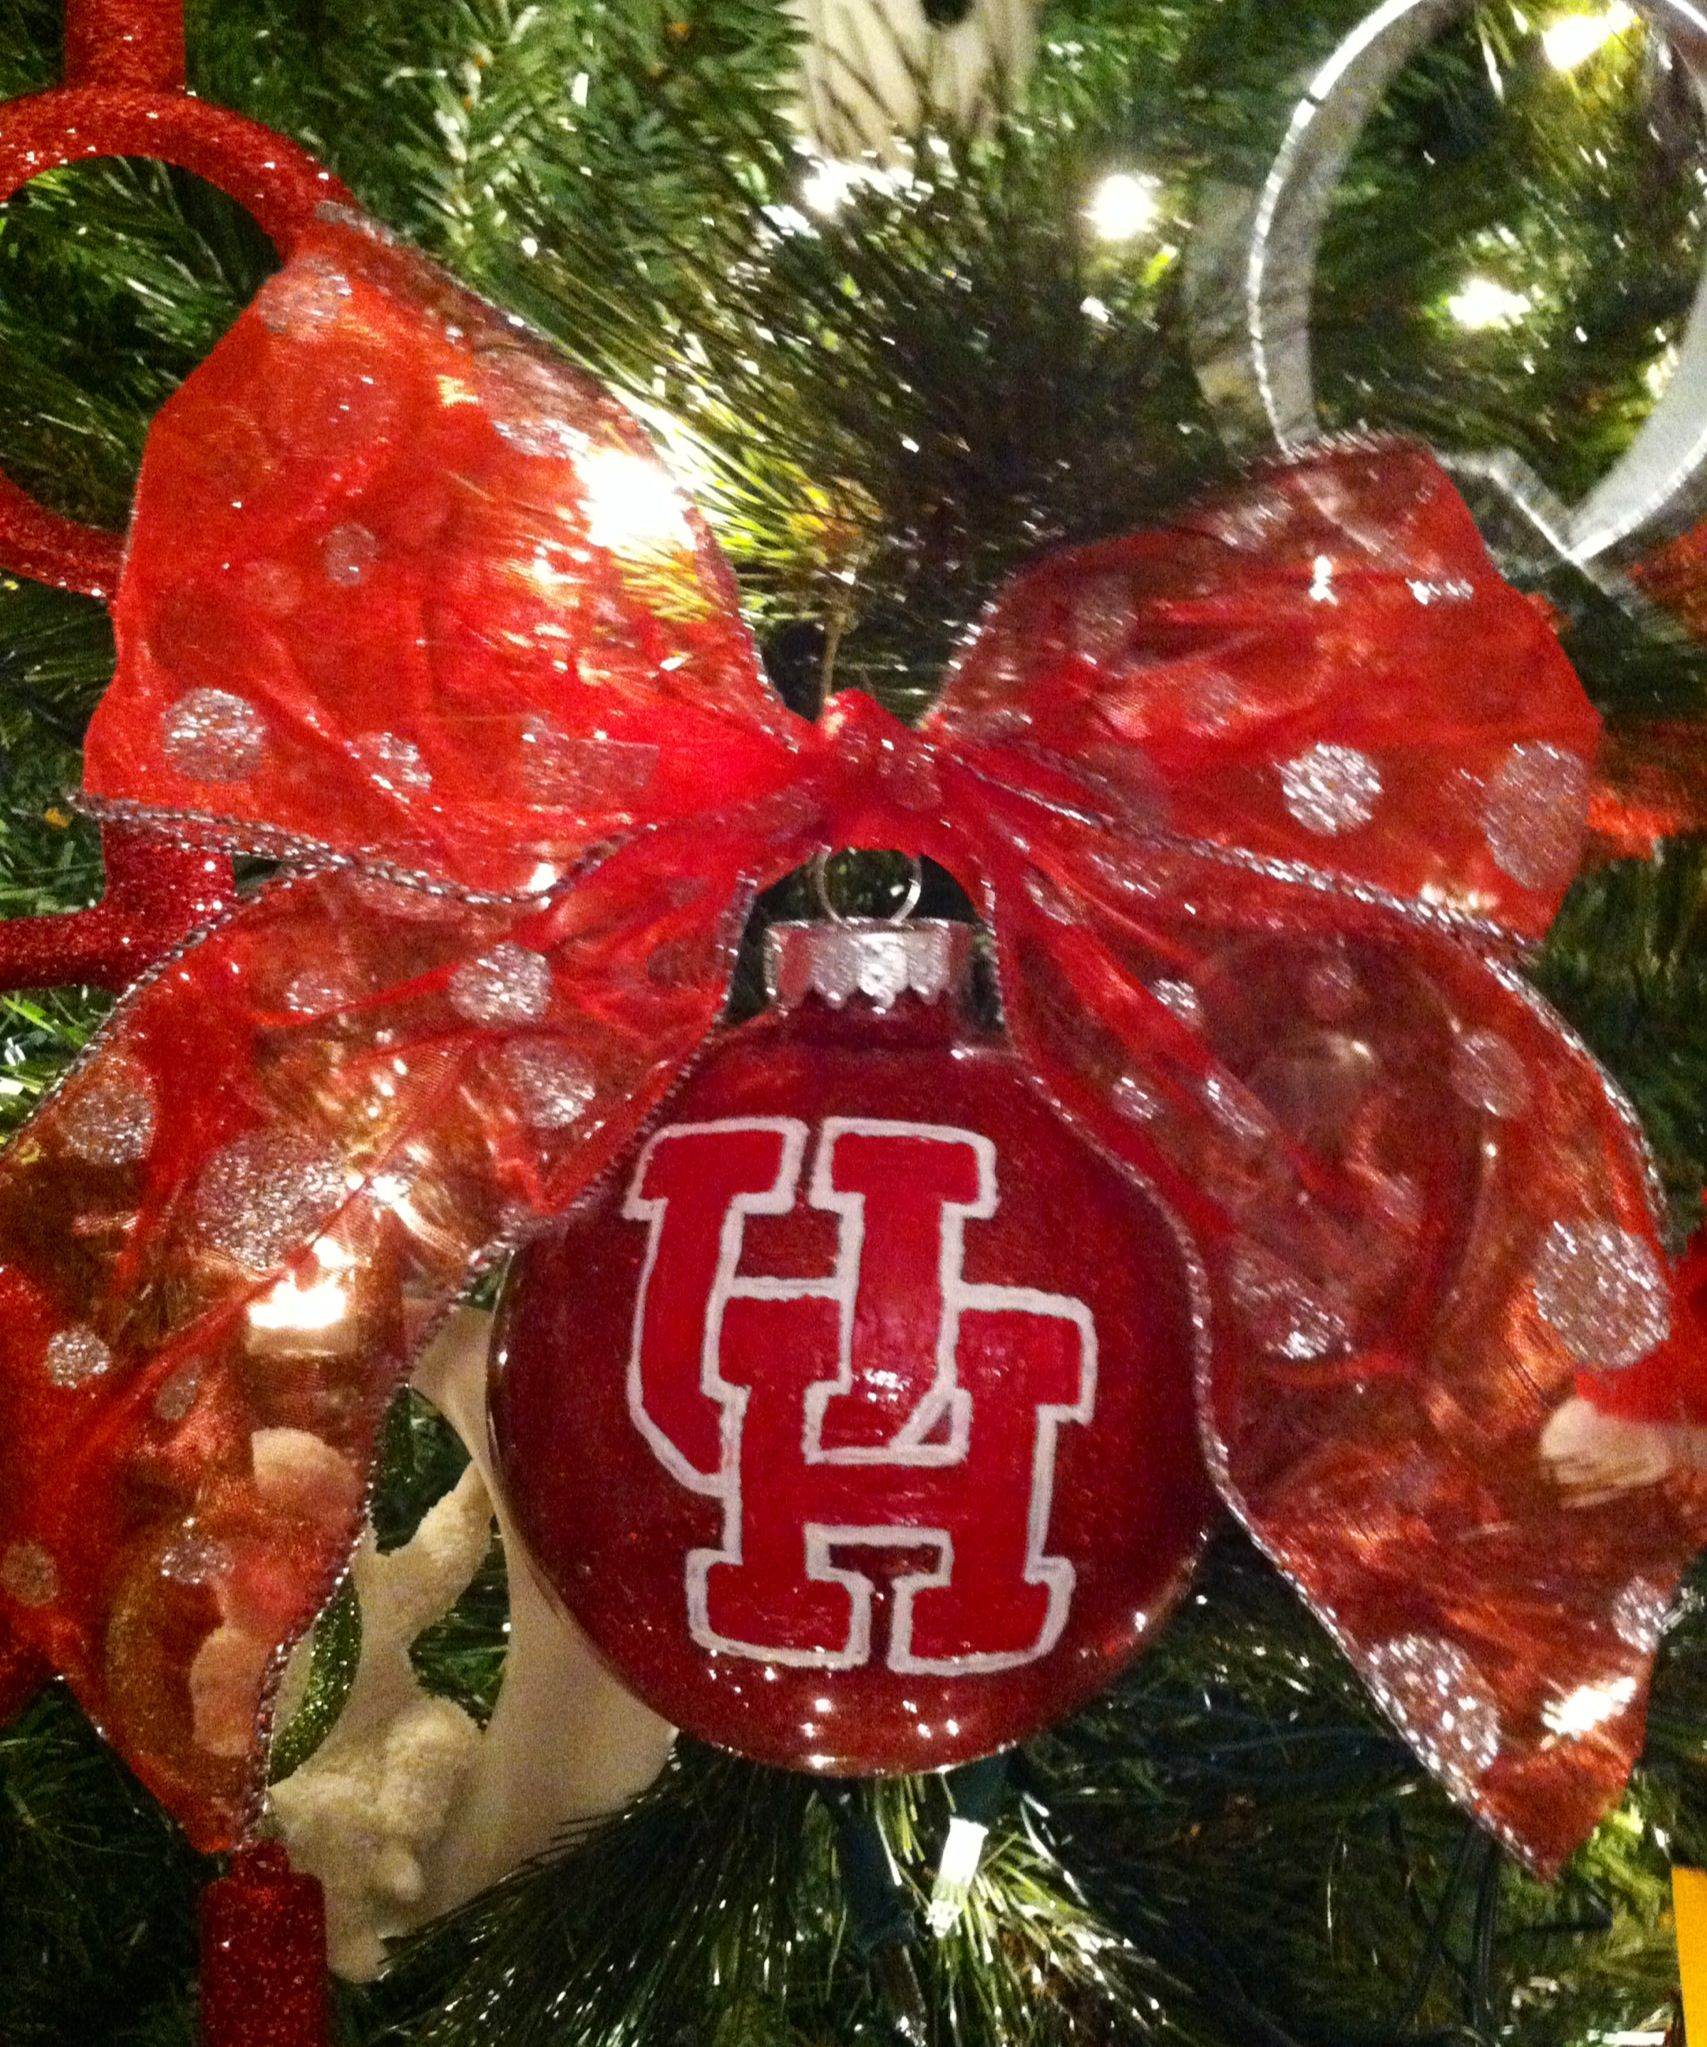 university of houston christmas ornament - Christmas Decorations Houston